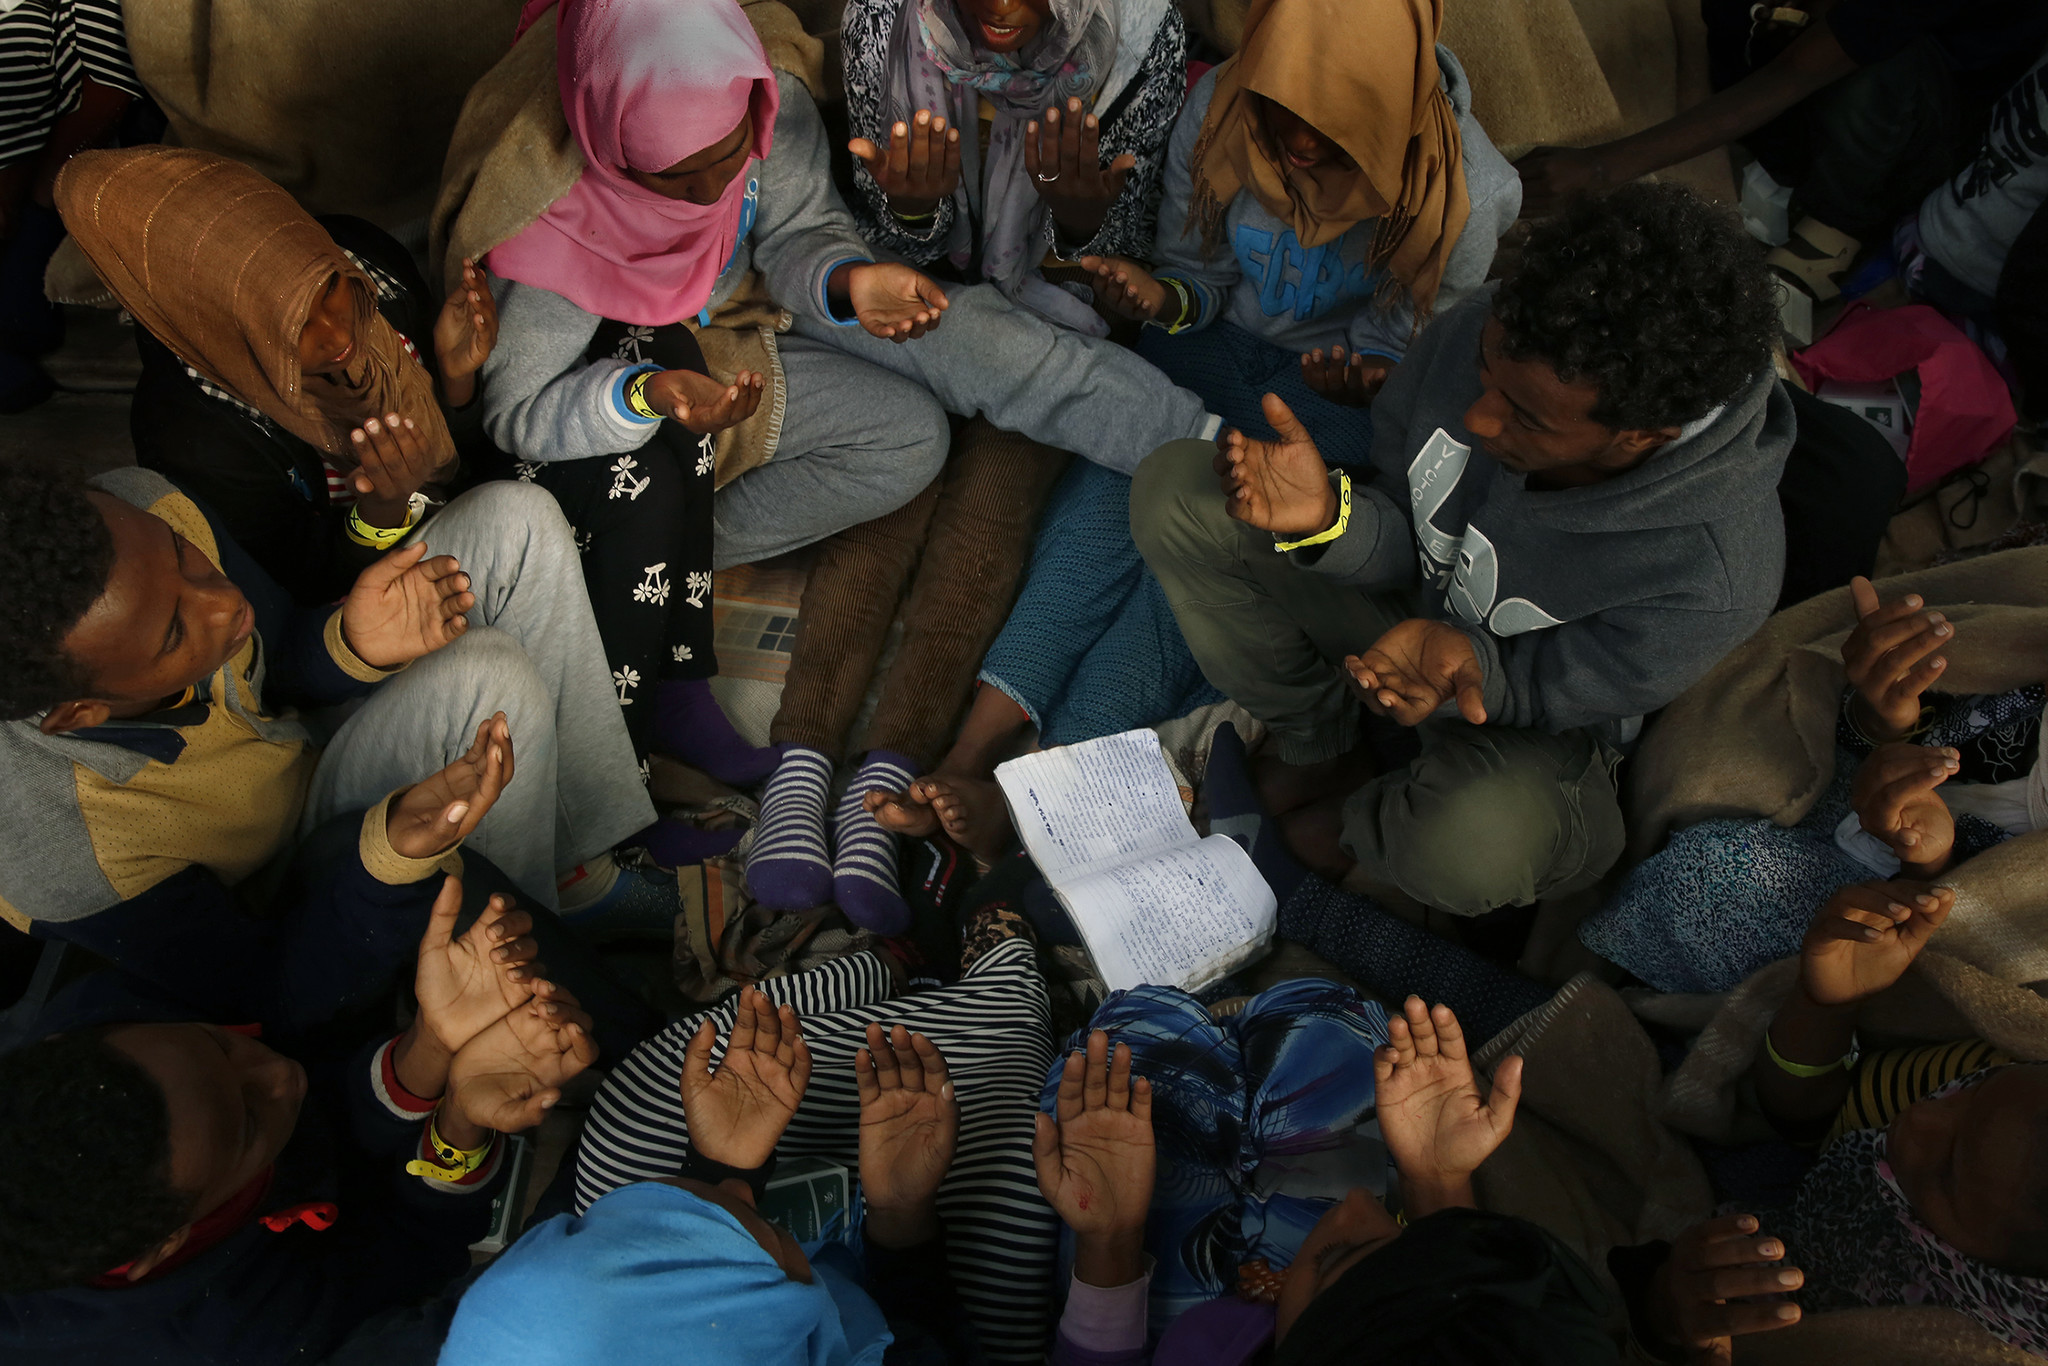 Migrants gather in a circle to sing and pray during the journey to Sicily. About 300 of the 412 rescued migrants were from Eritrea, where Christians and Muslims make up the majority of the population.